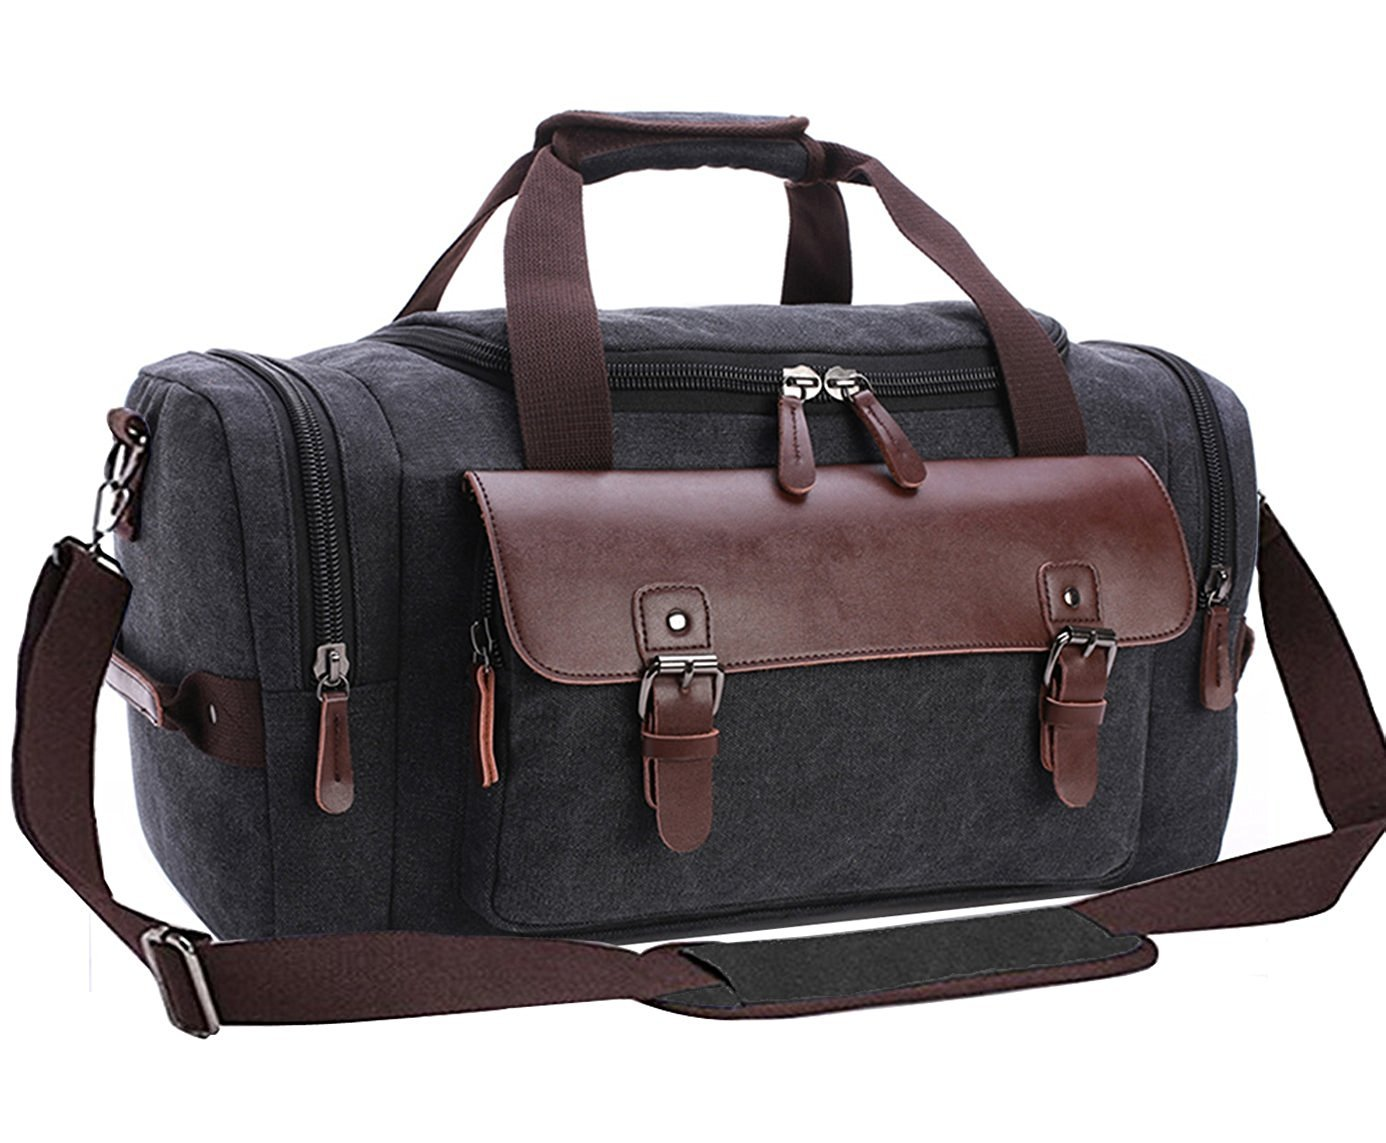 Unisex's Canvas Duffel Bag,Berchirly Oversized Travel Gym Sports Luggage Bag Tote